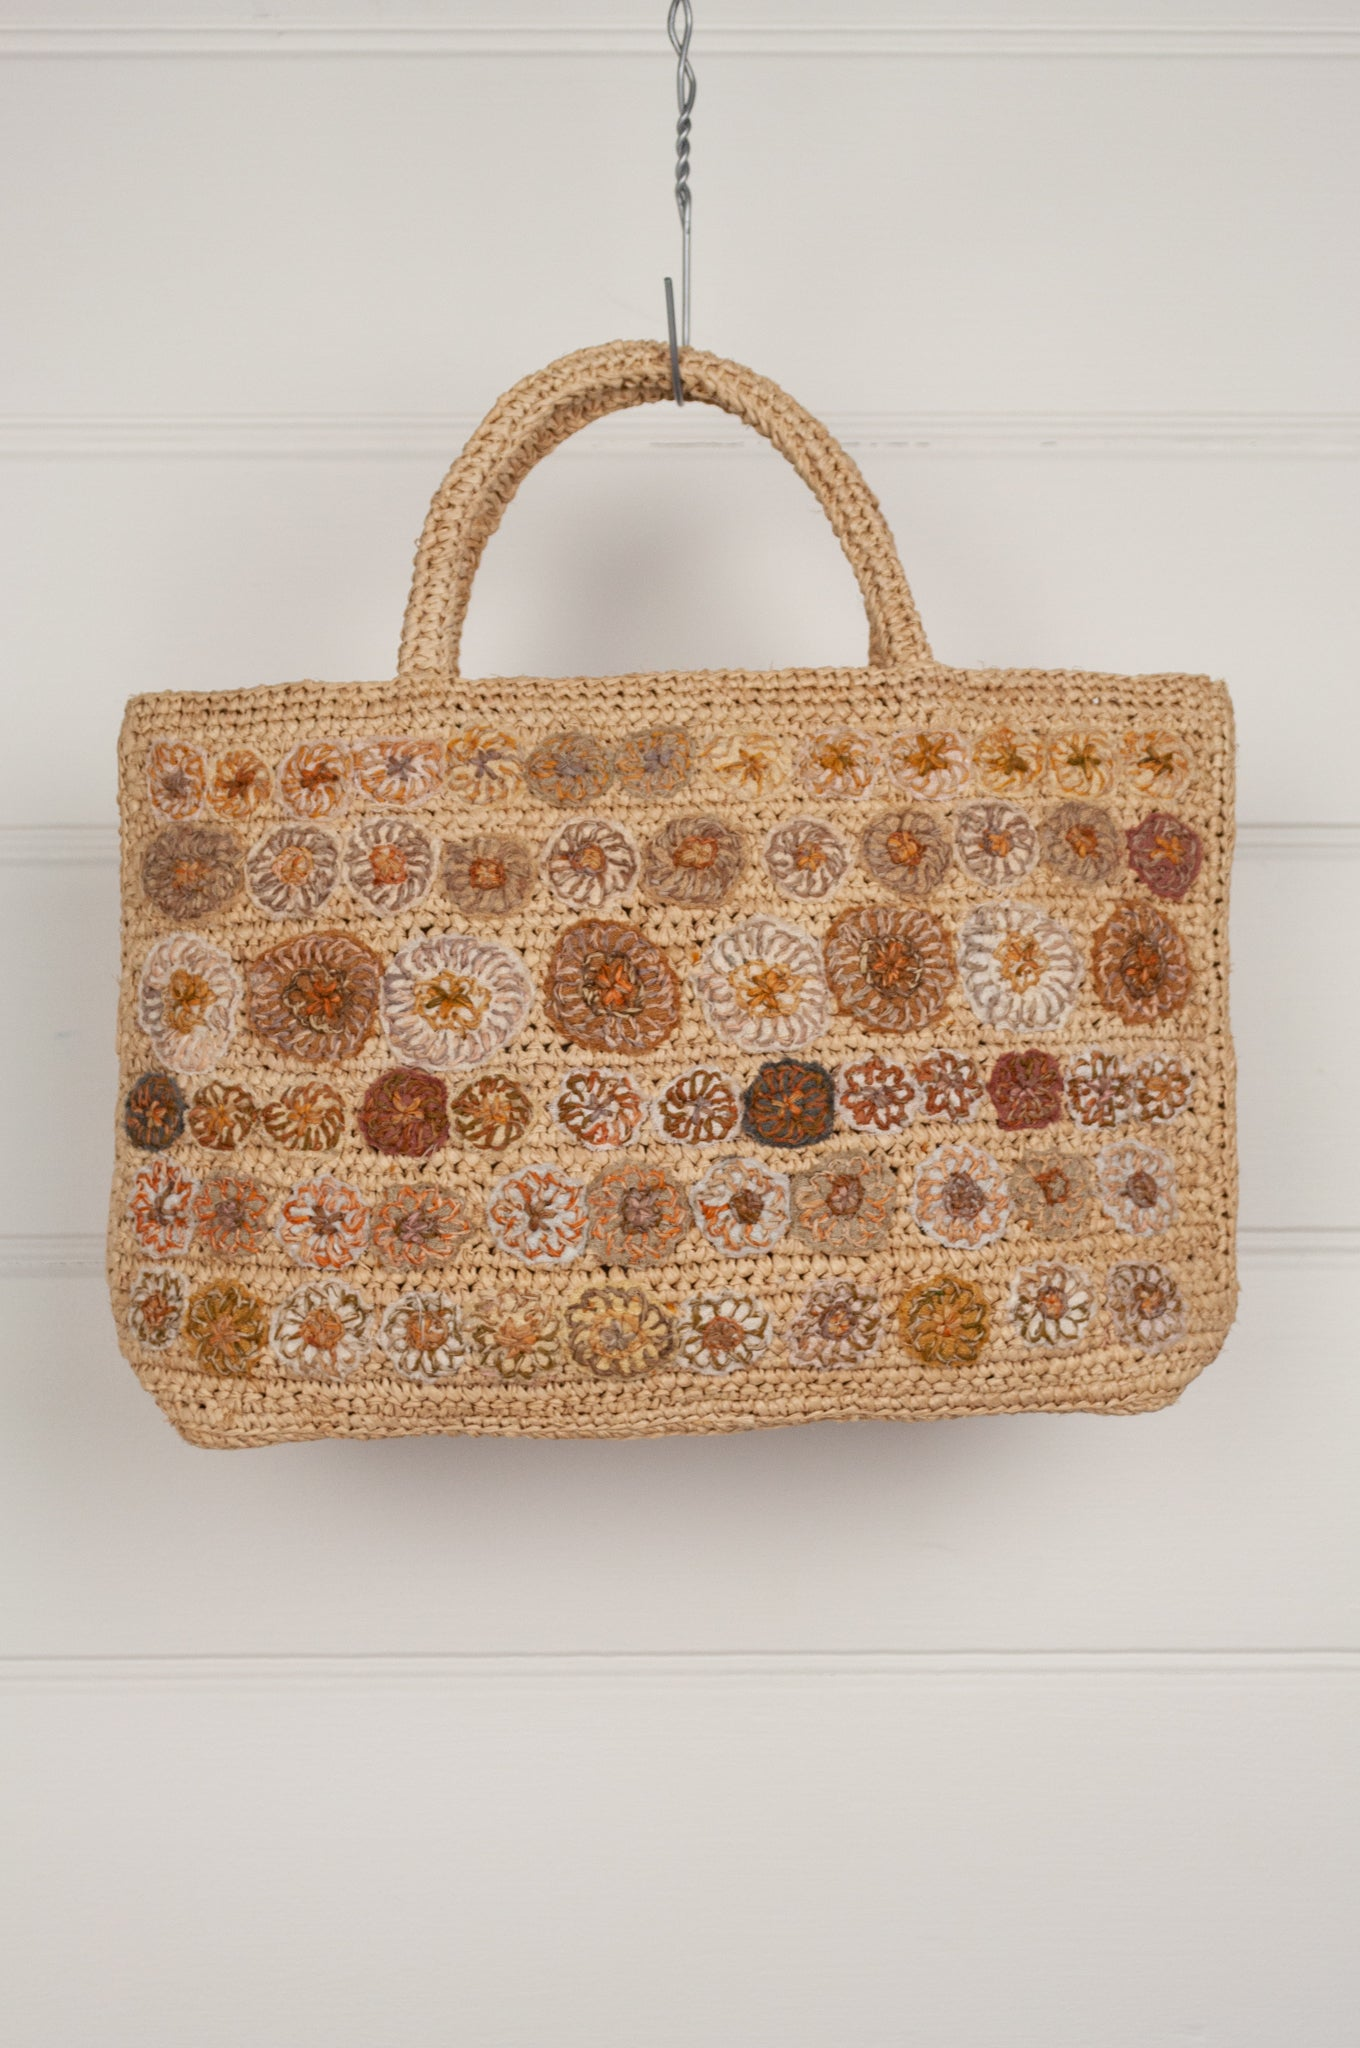 Sophie Digard handmade small crocheted raffia bag on flax base in the Sesam palette with embroidered flowers.